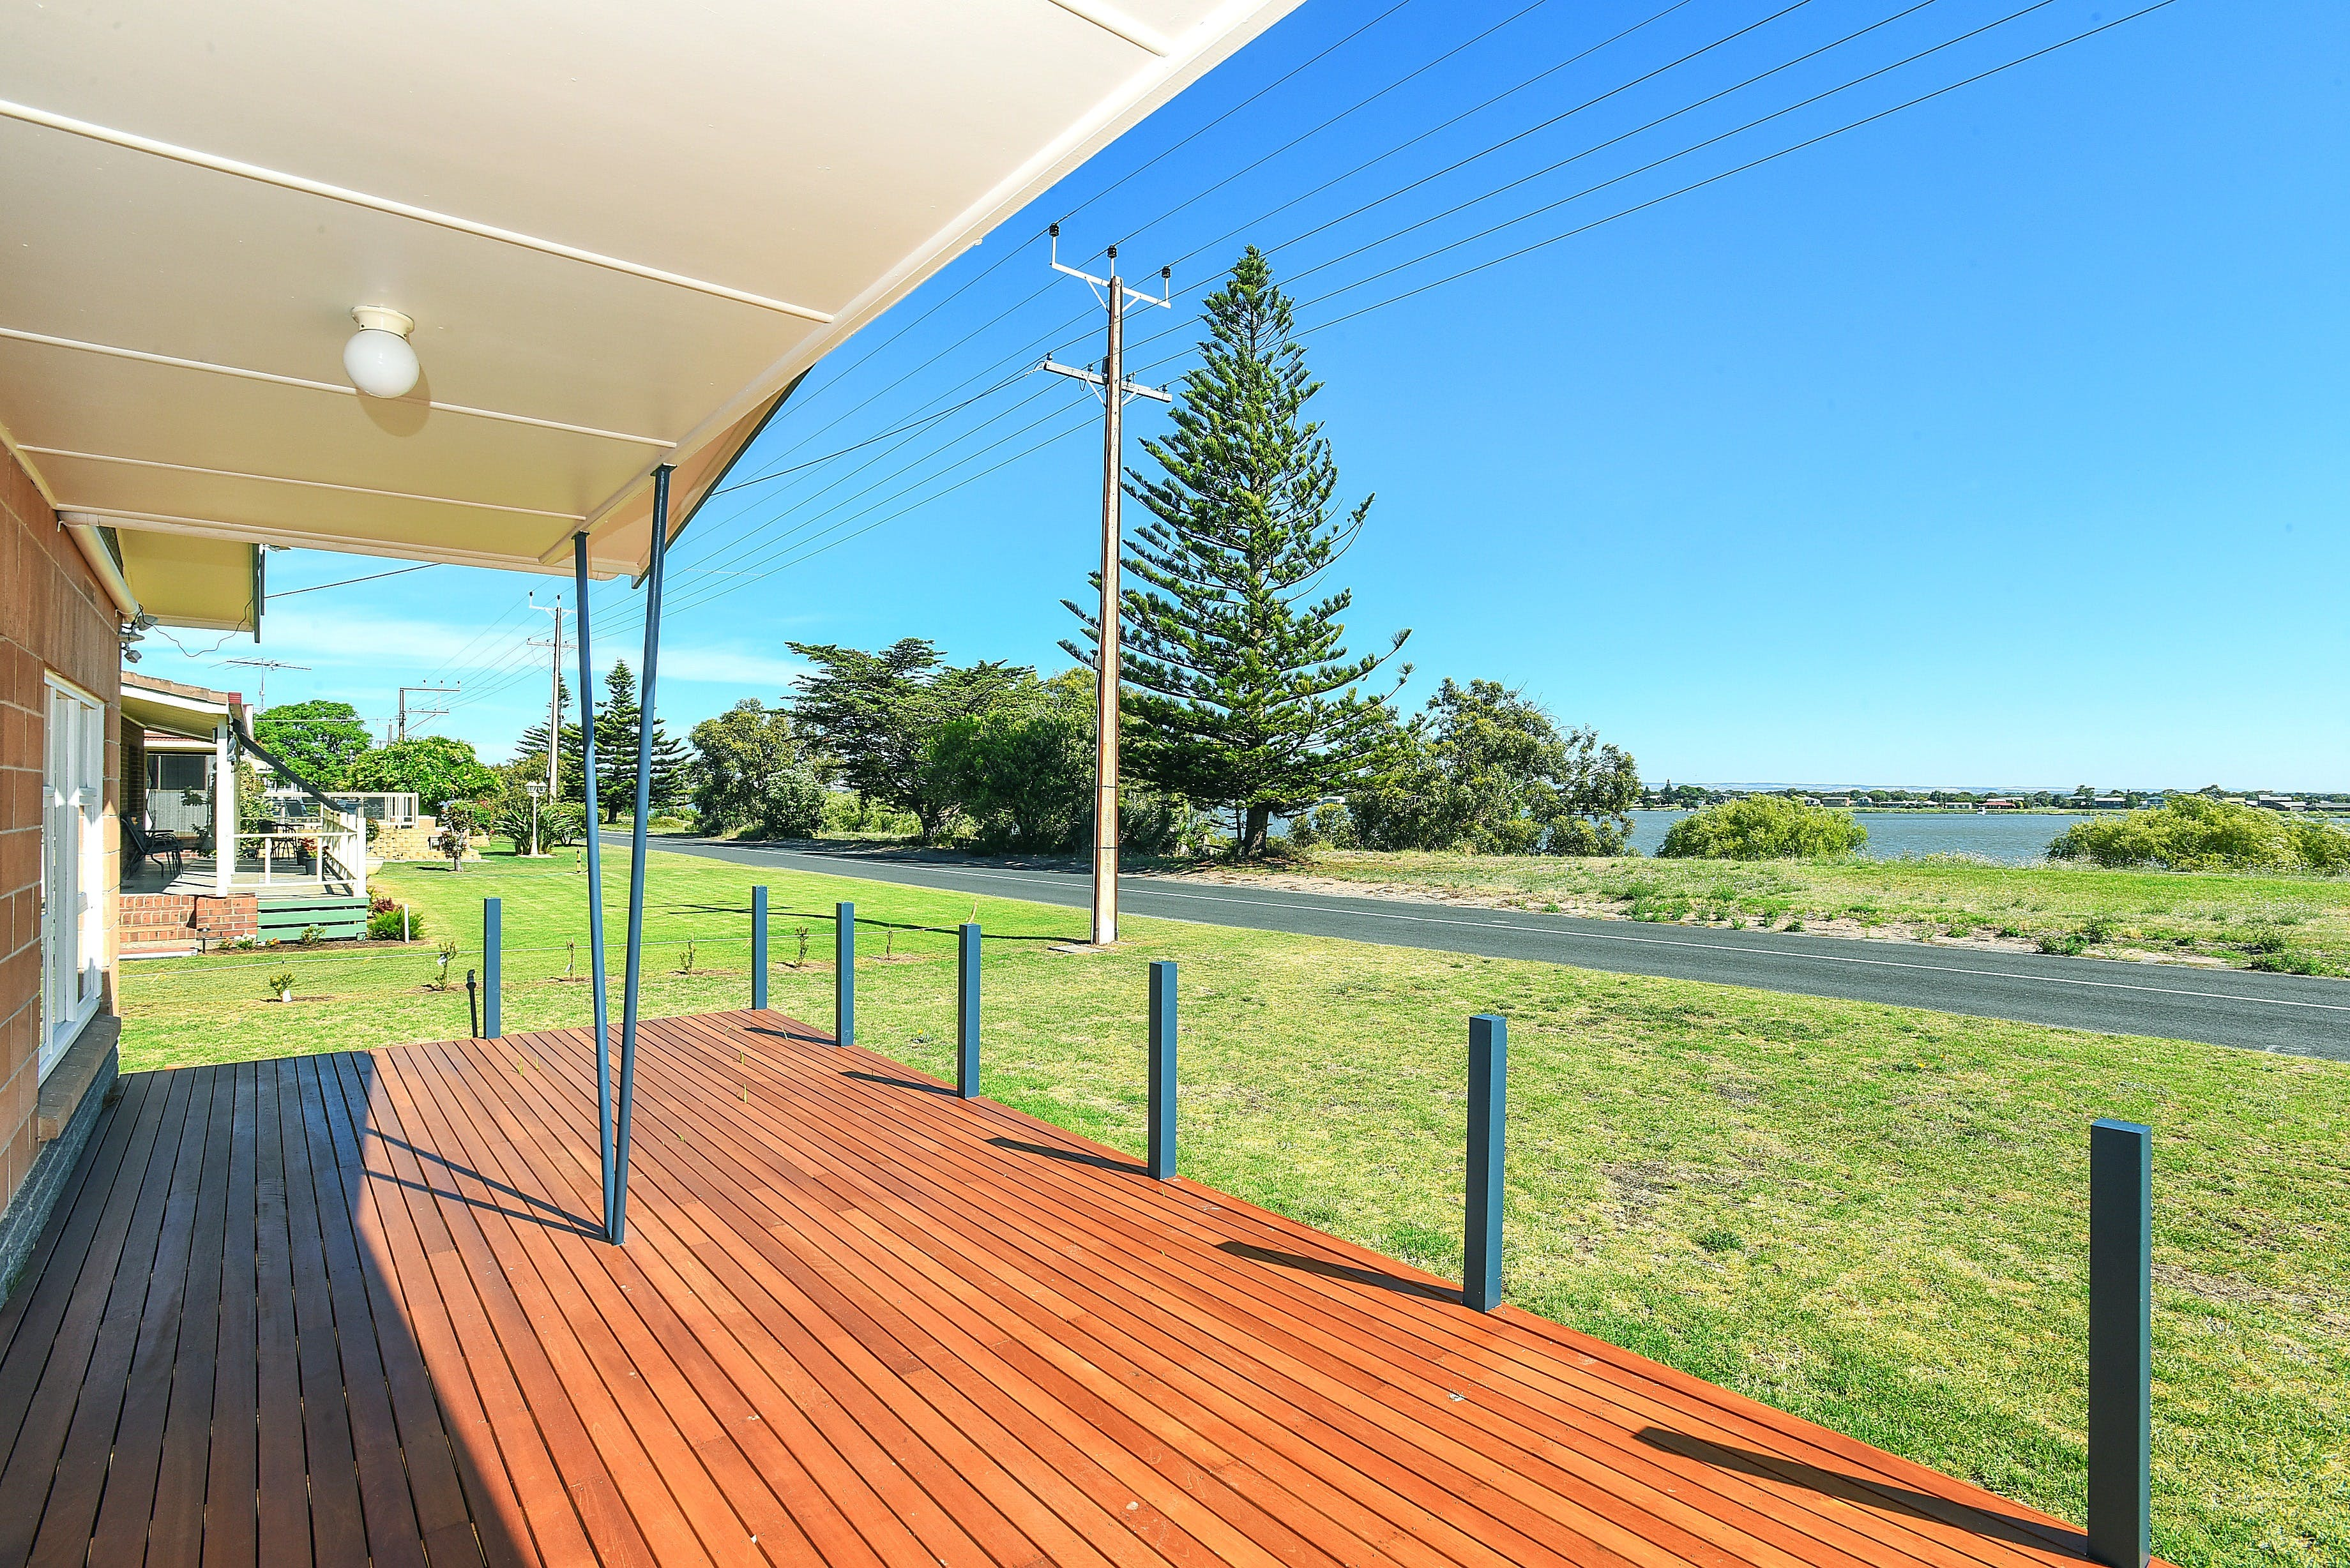 25 Captain Sturt Parade - Hindmarsh Island - Accommodation Perth